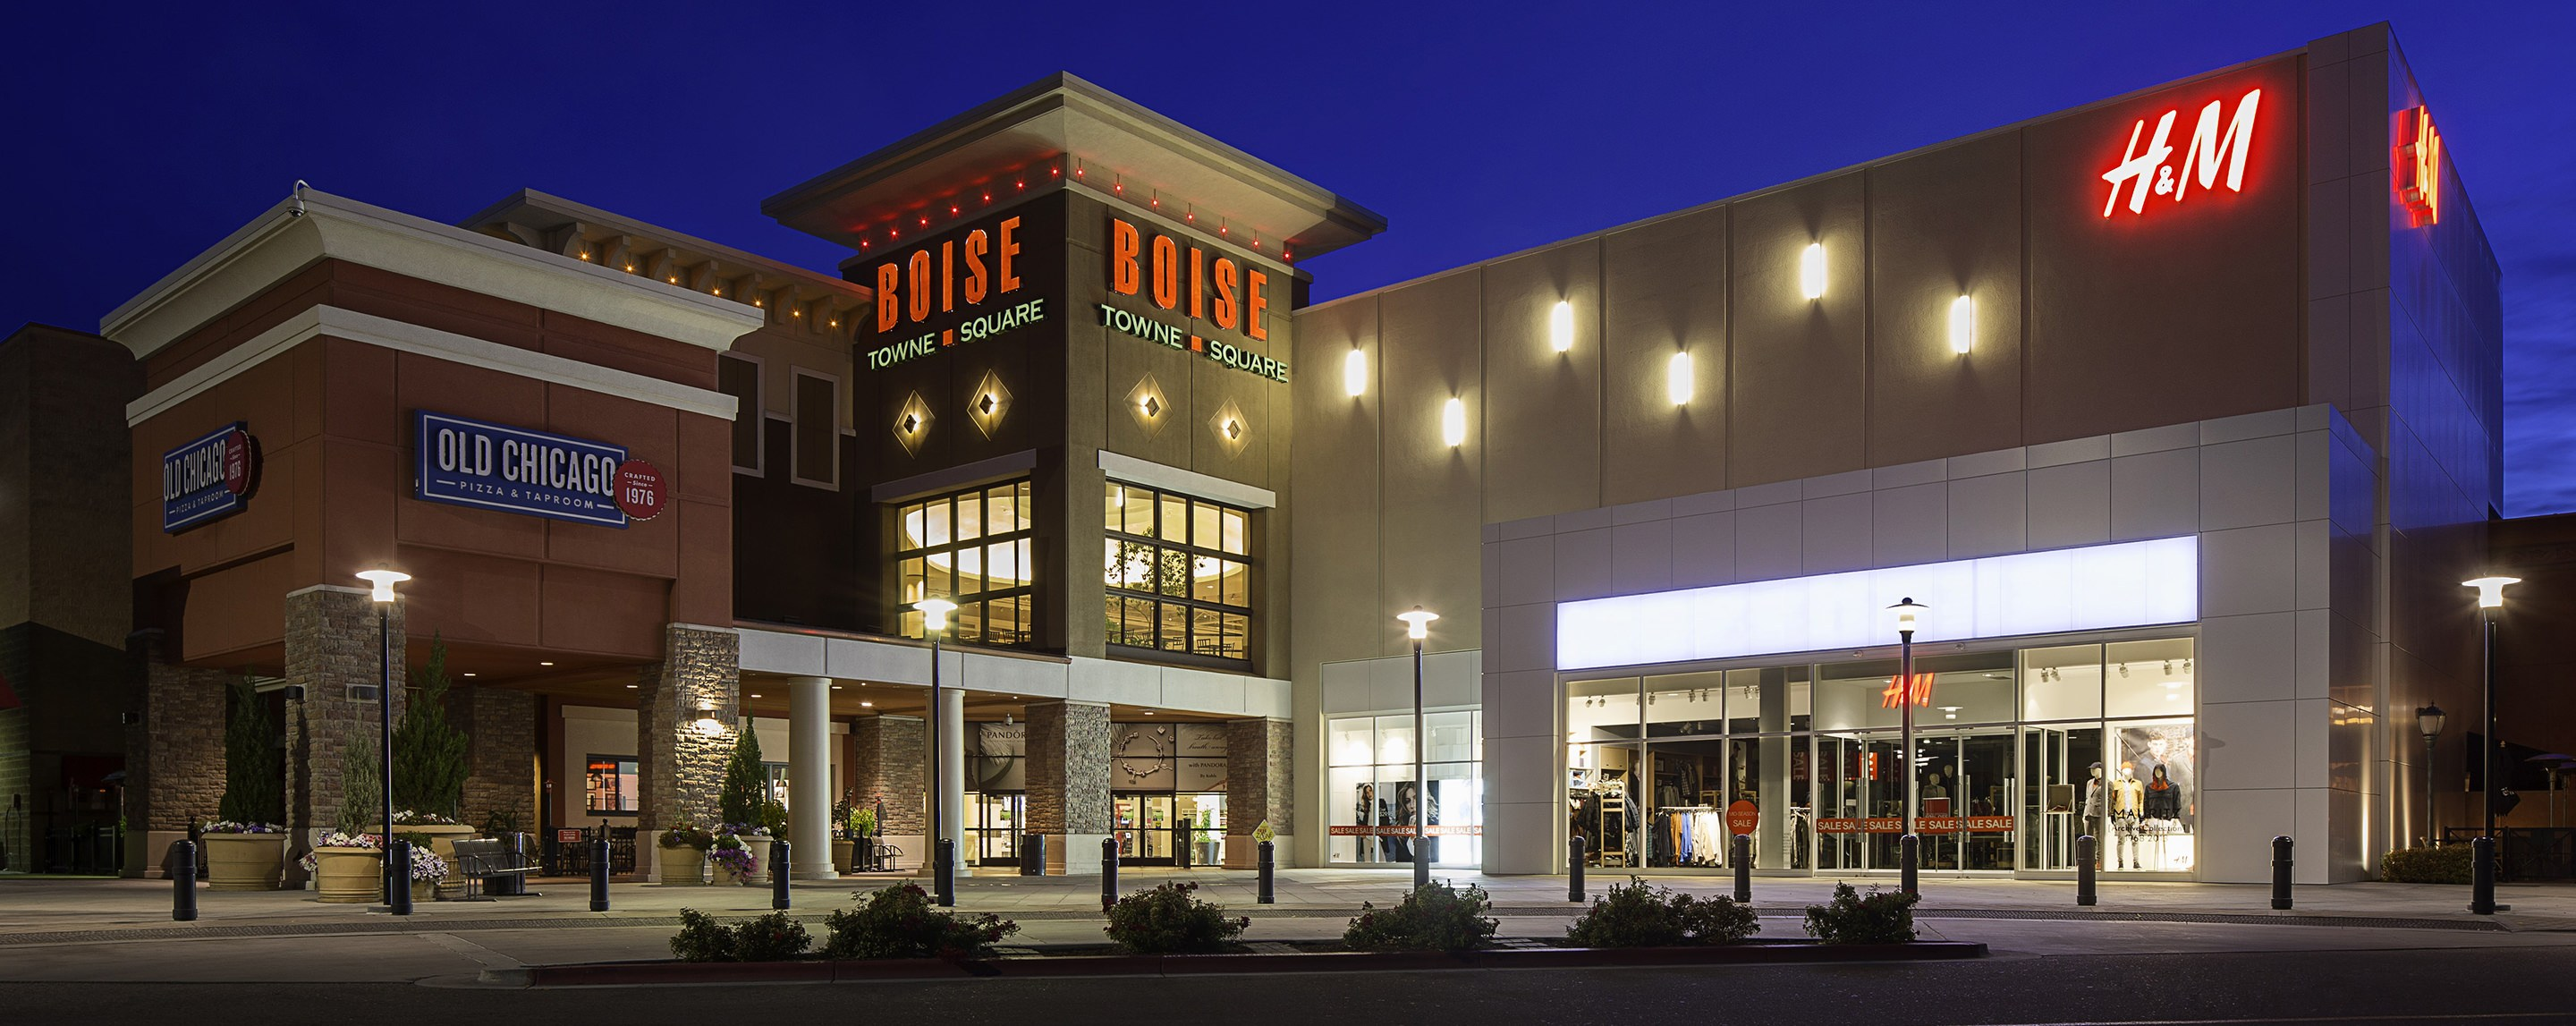 Boise Town Square shopping center featuring  Old Chicago is seen lit up at night.